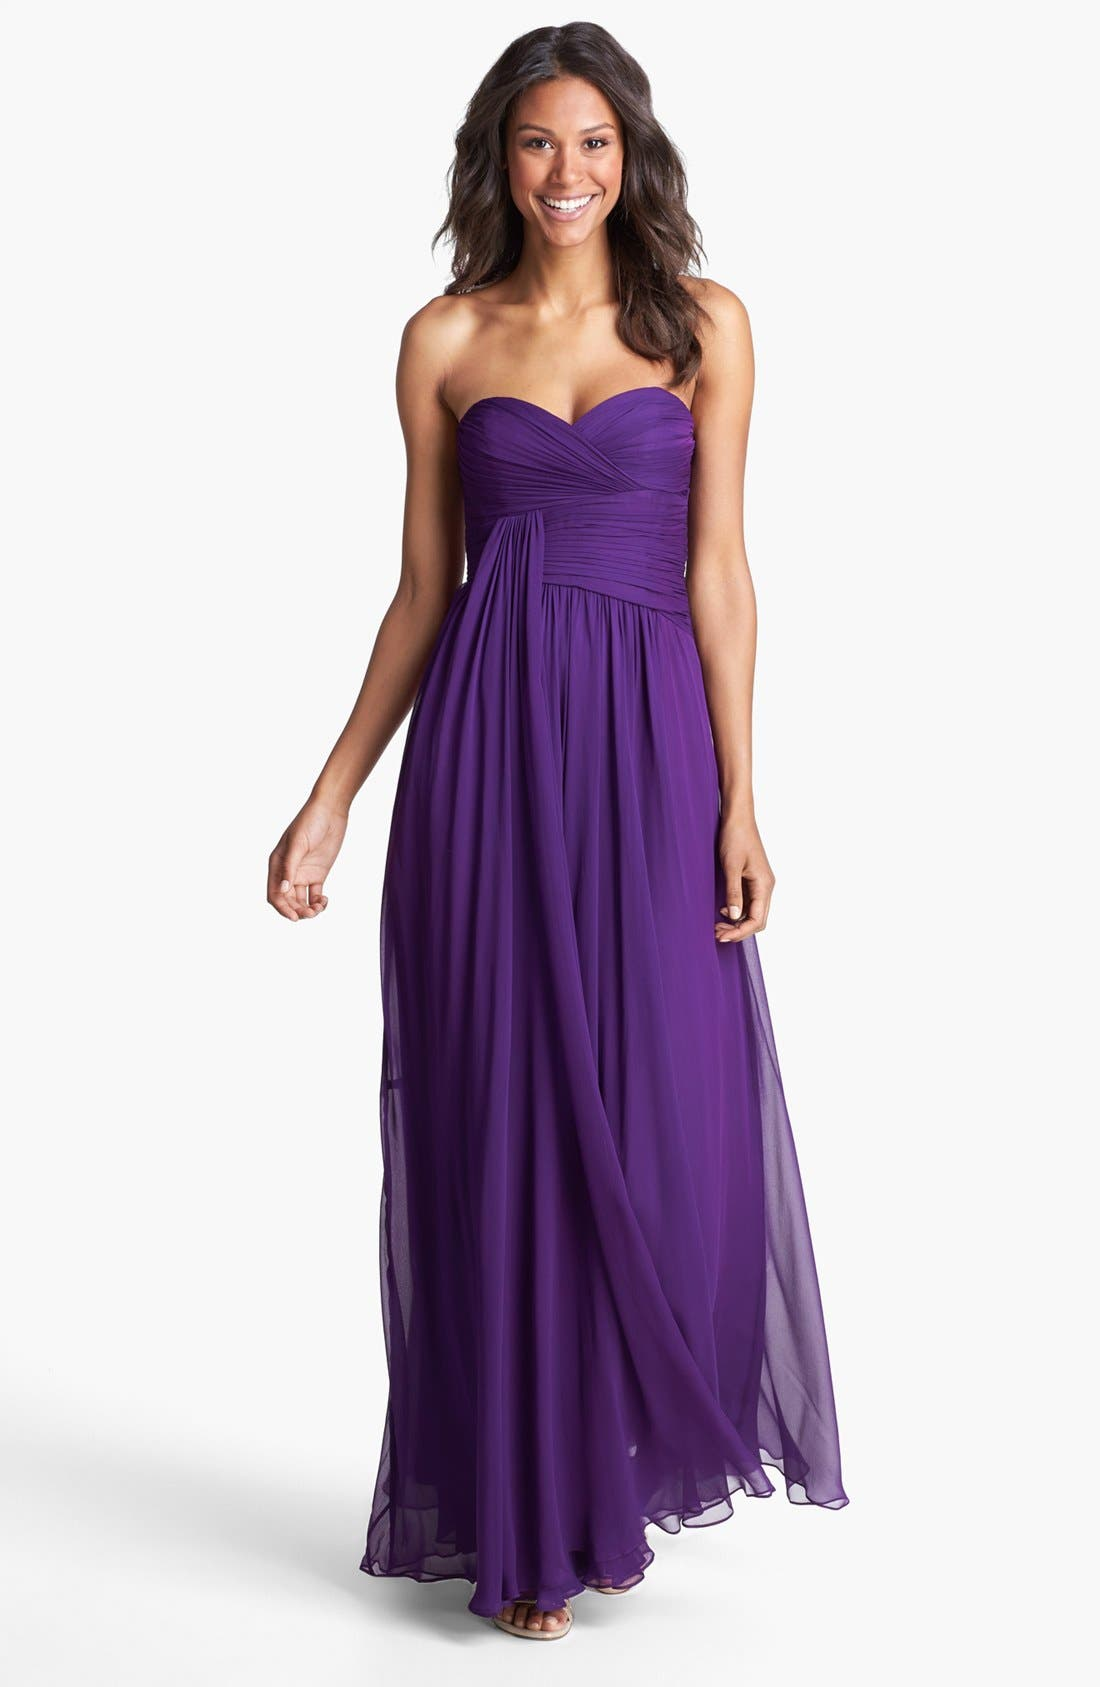 Main Image - Jill Jill Stuart Draped Chiffon Dress